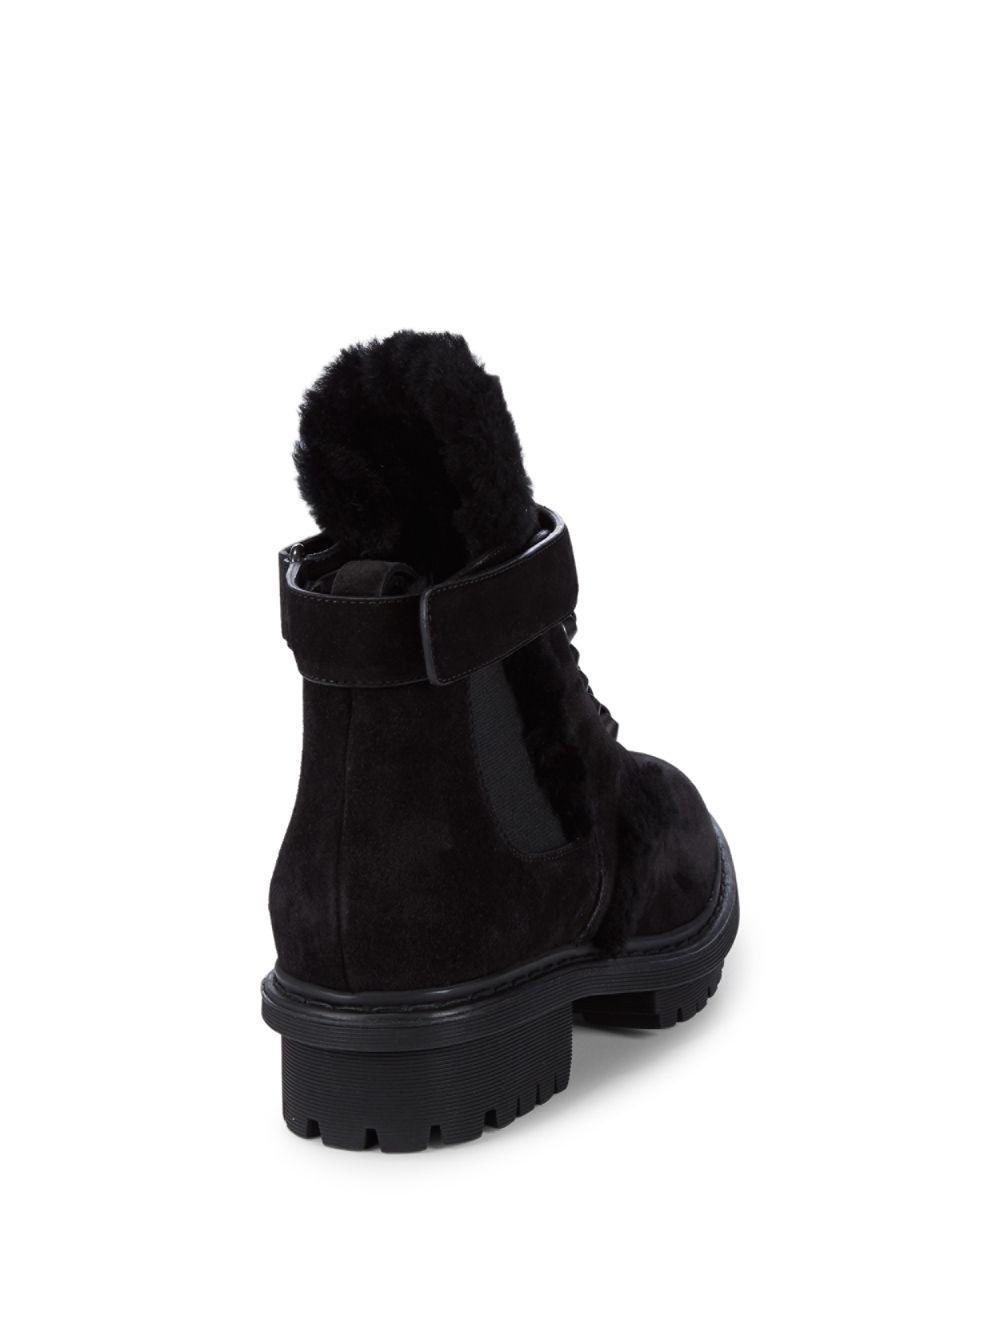 366366e15da9ec Lyst - Balenciaga Shearling-trimmed Leather Ankle Boots in Black